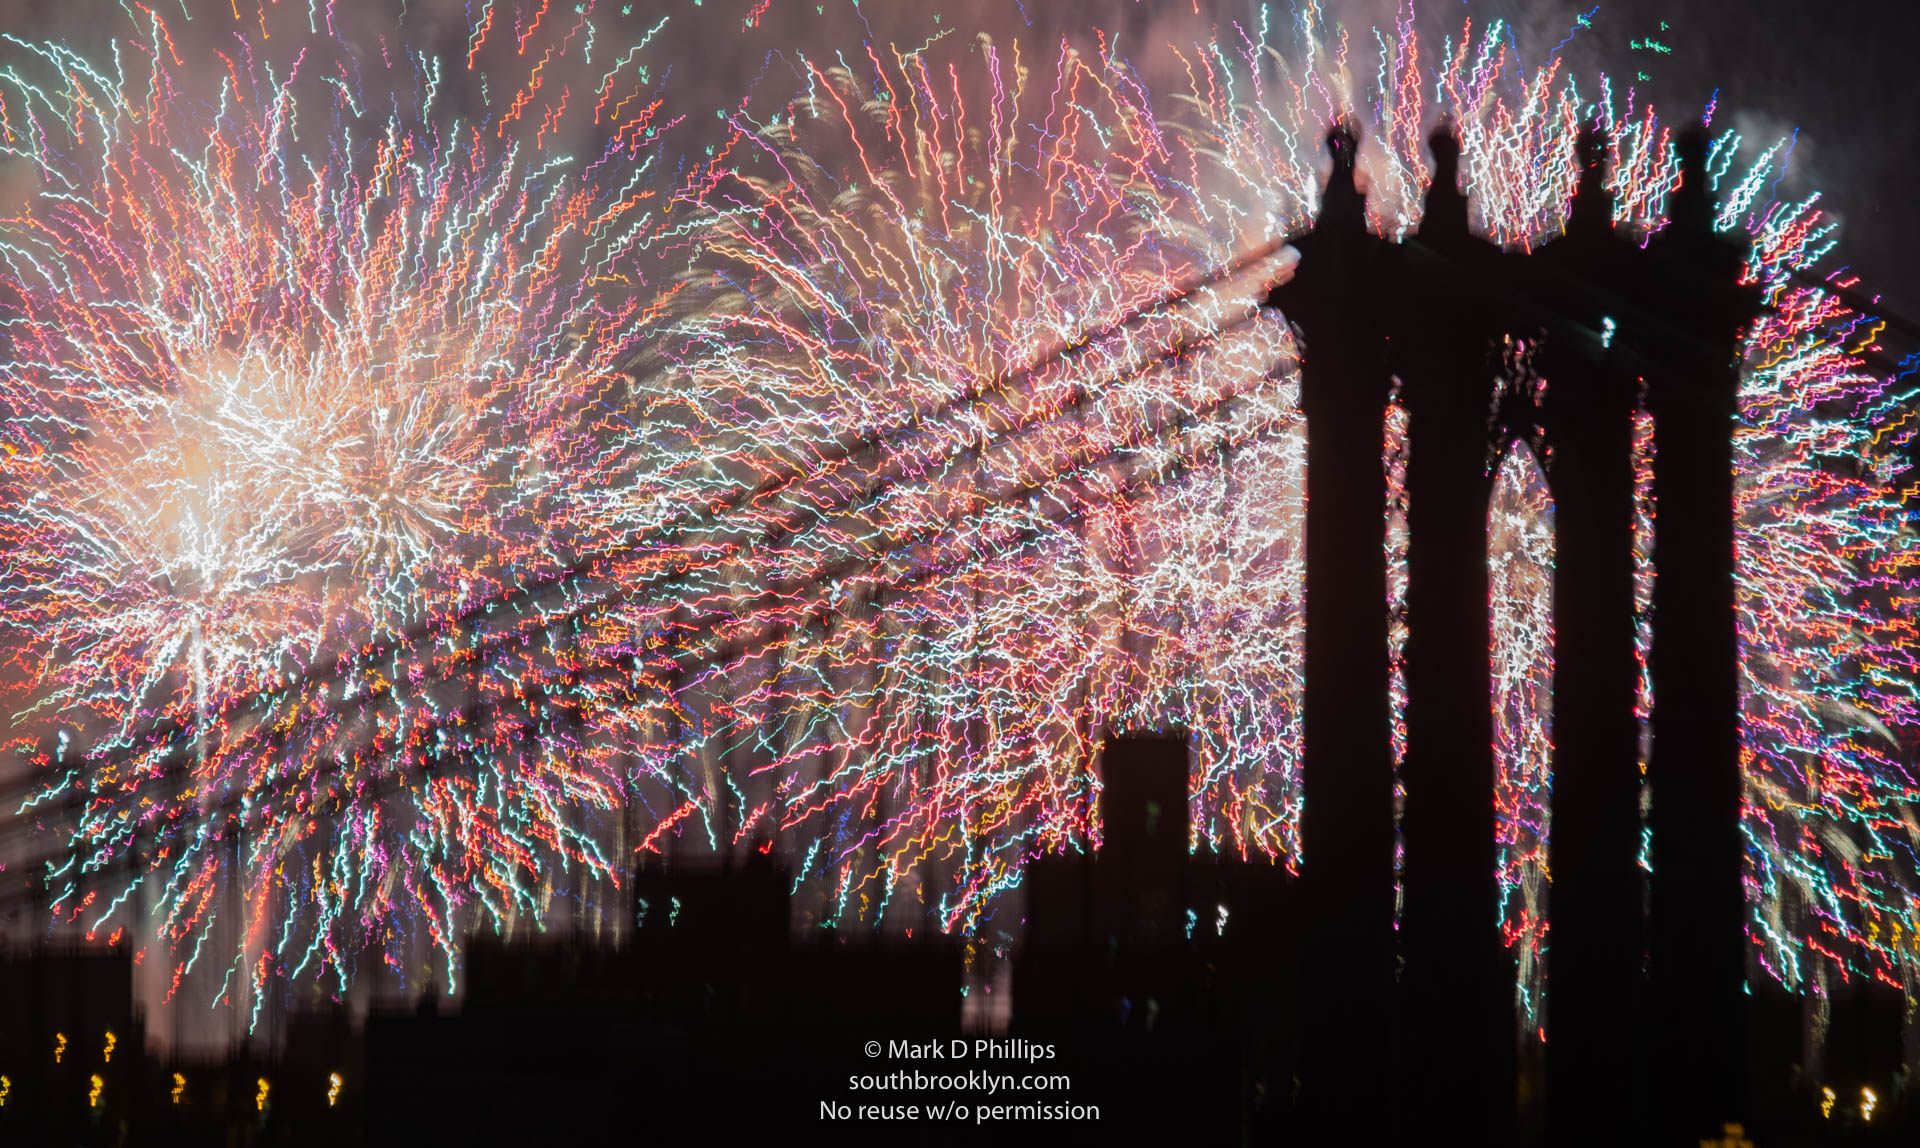 Fireworks and a majestic bridge come together to give a different look to the Macy's Fourth of July fireworks in New York City. A frenzy of colors fill the sky behind the Manhattan Bridge. ©Mark D Phillips